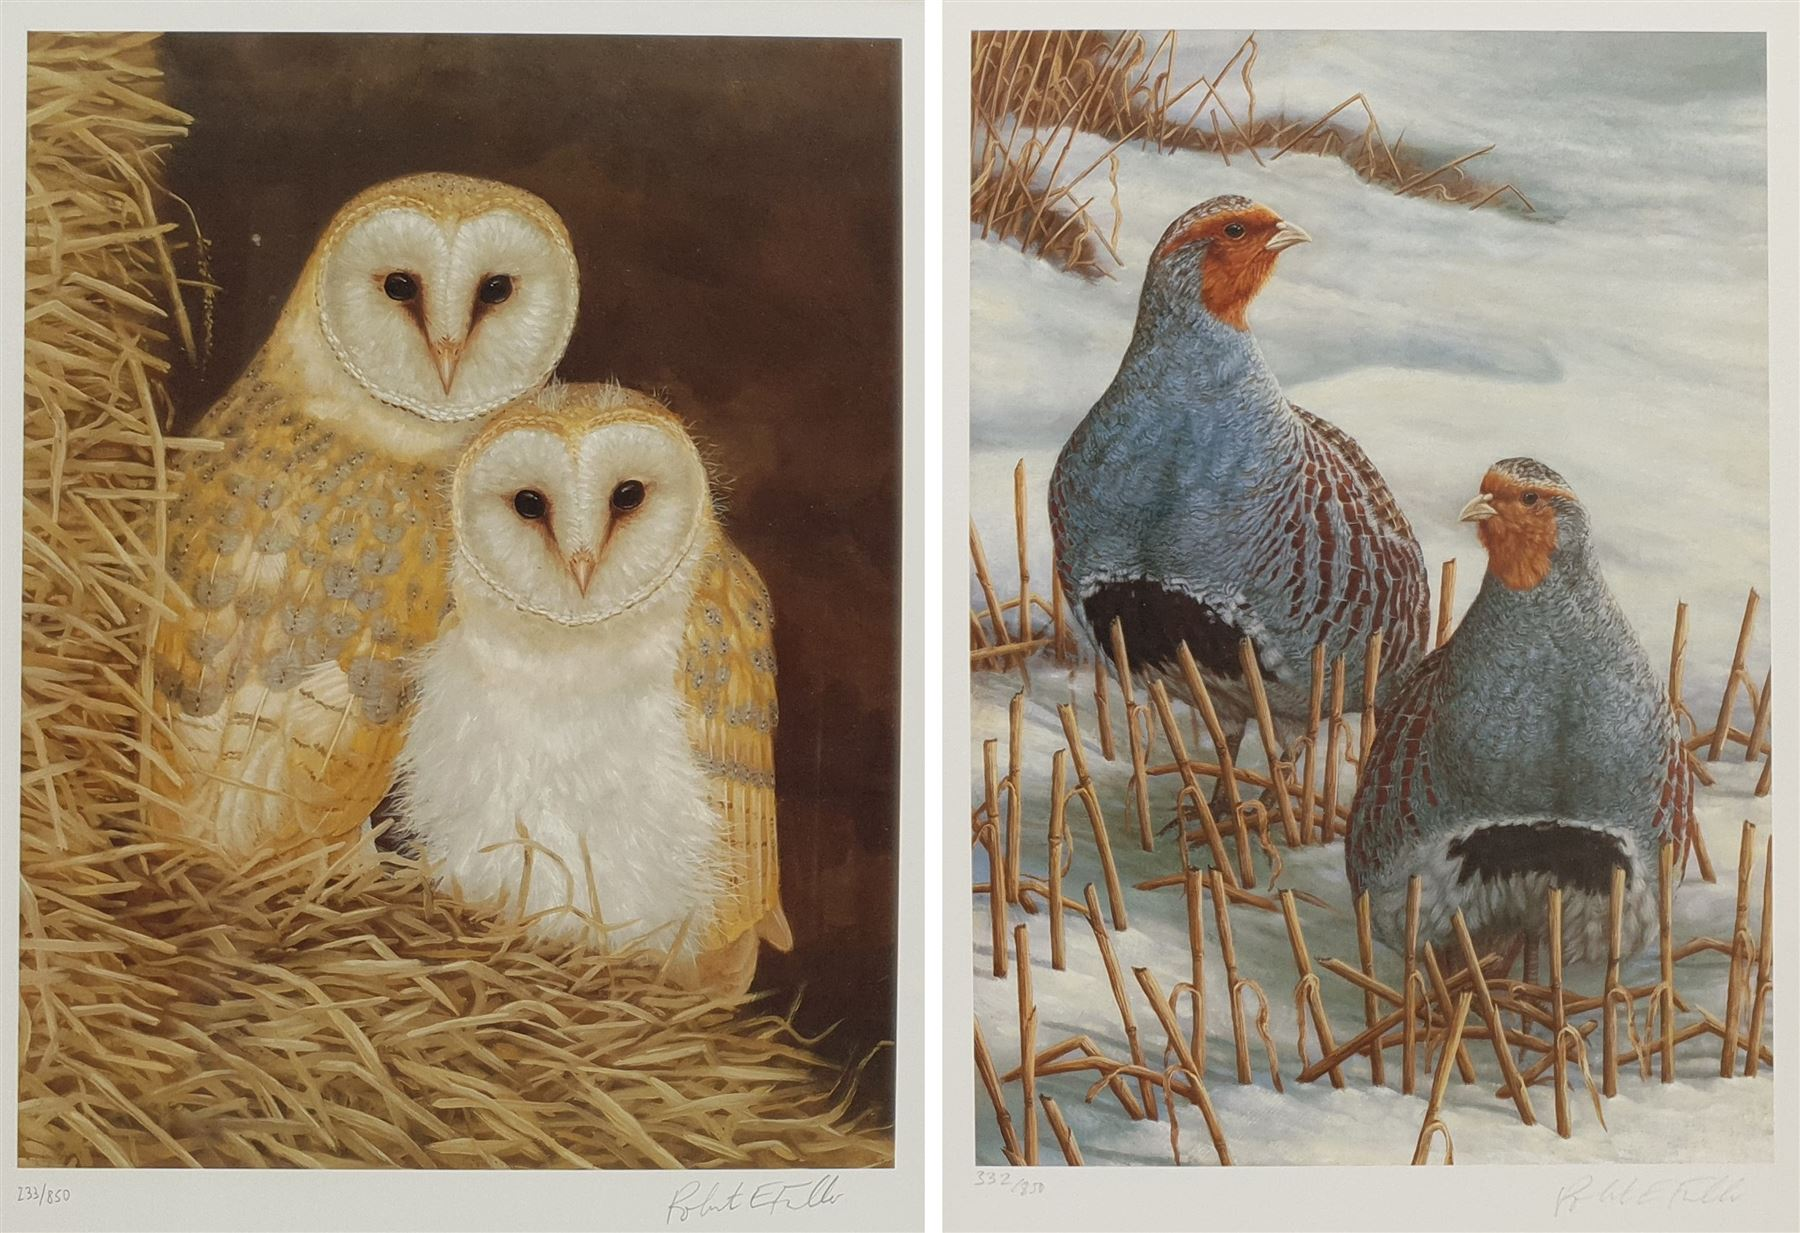 Robert E Fuller (British 1972-): 'Owls Snuggled Up' and 'Greys on Winter Stubble'